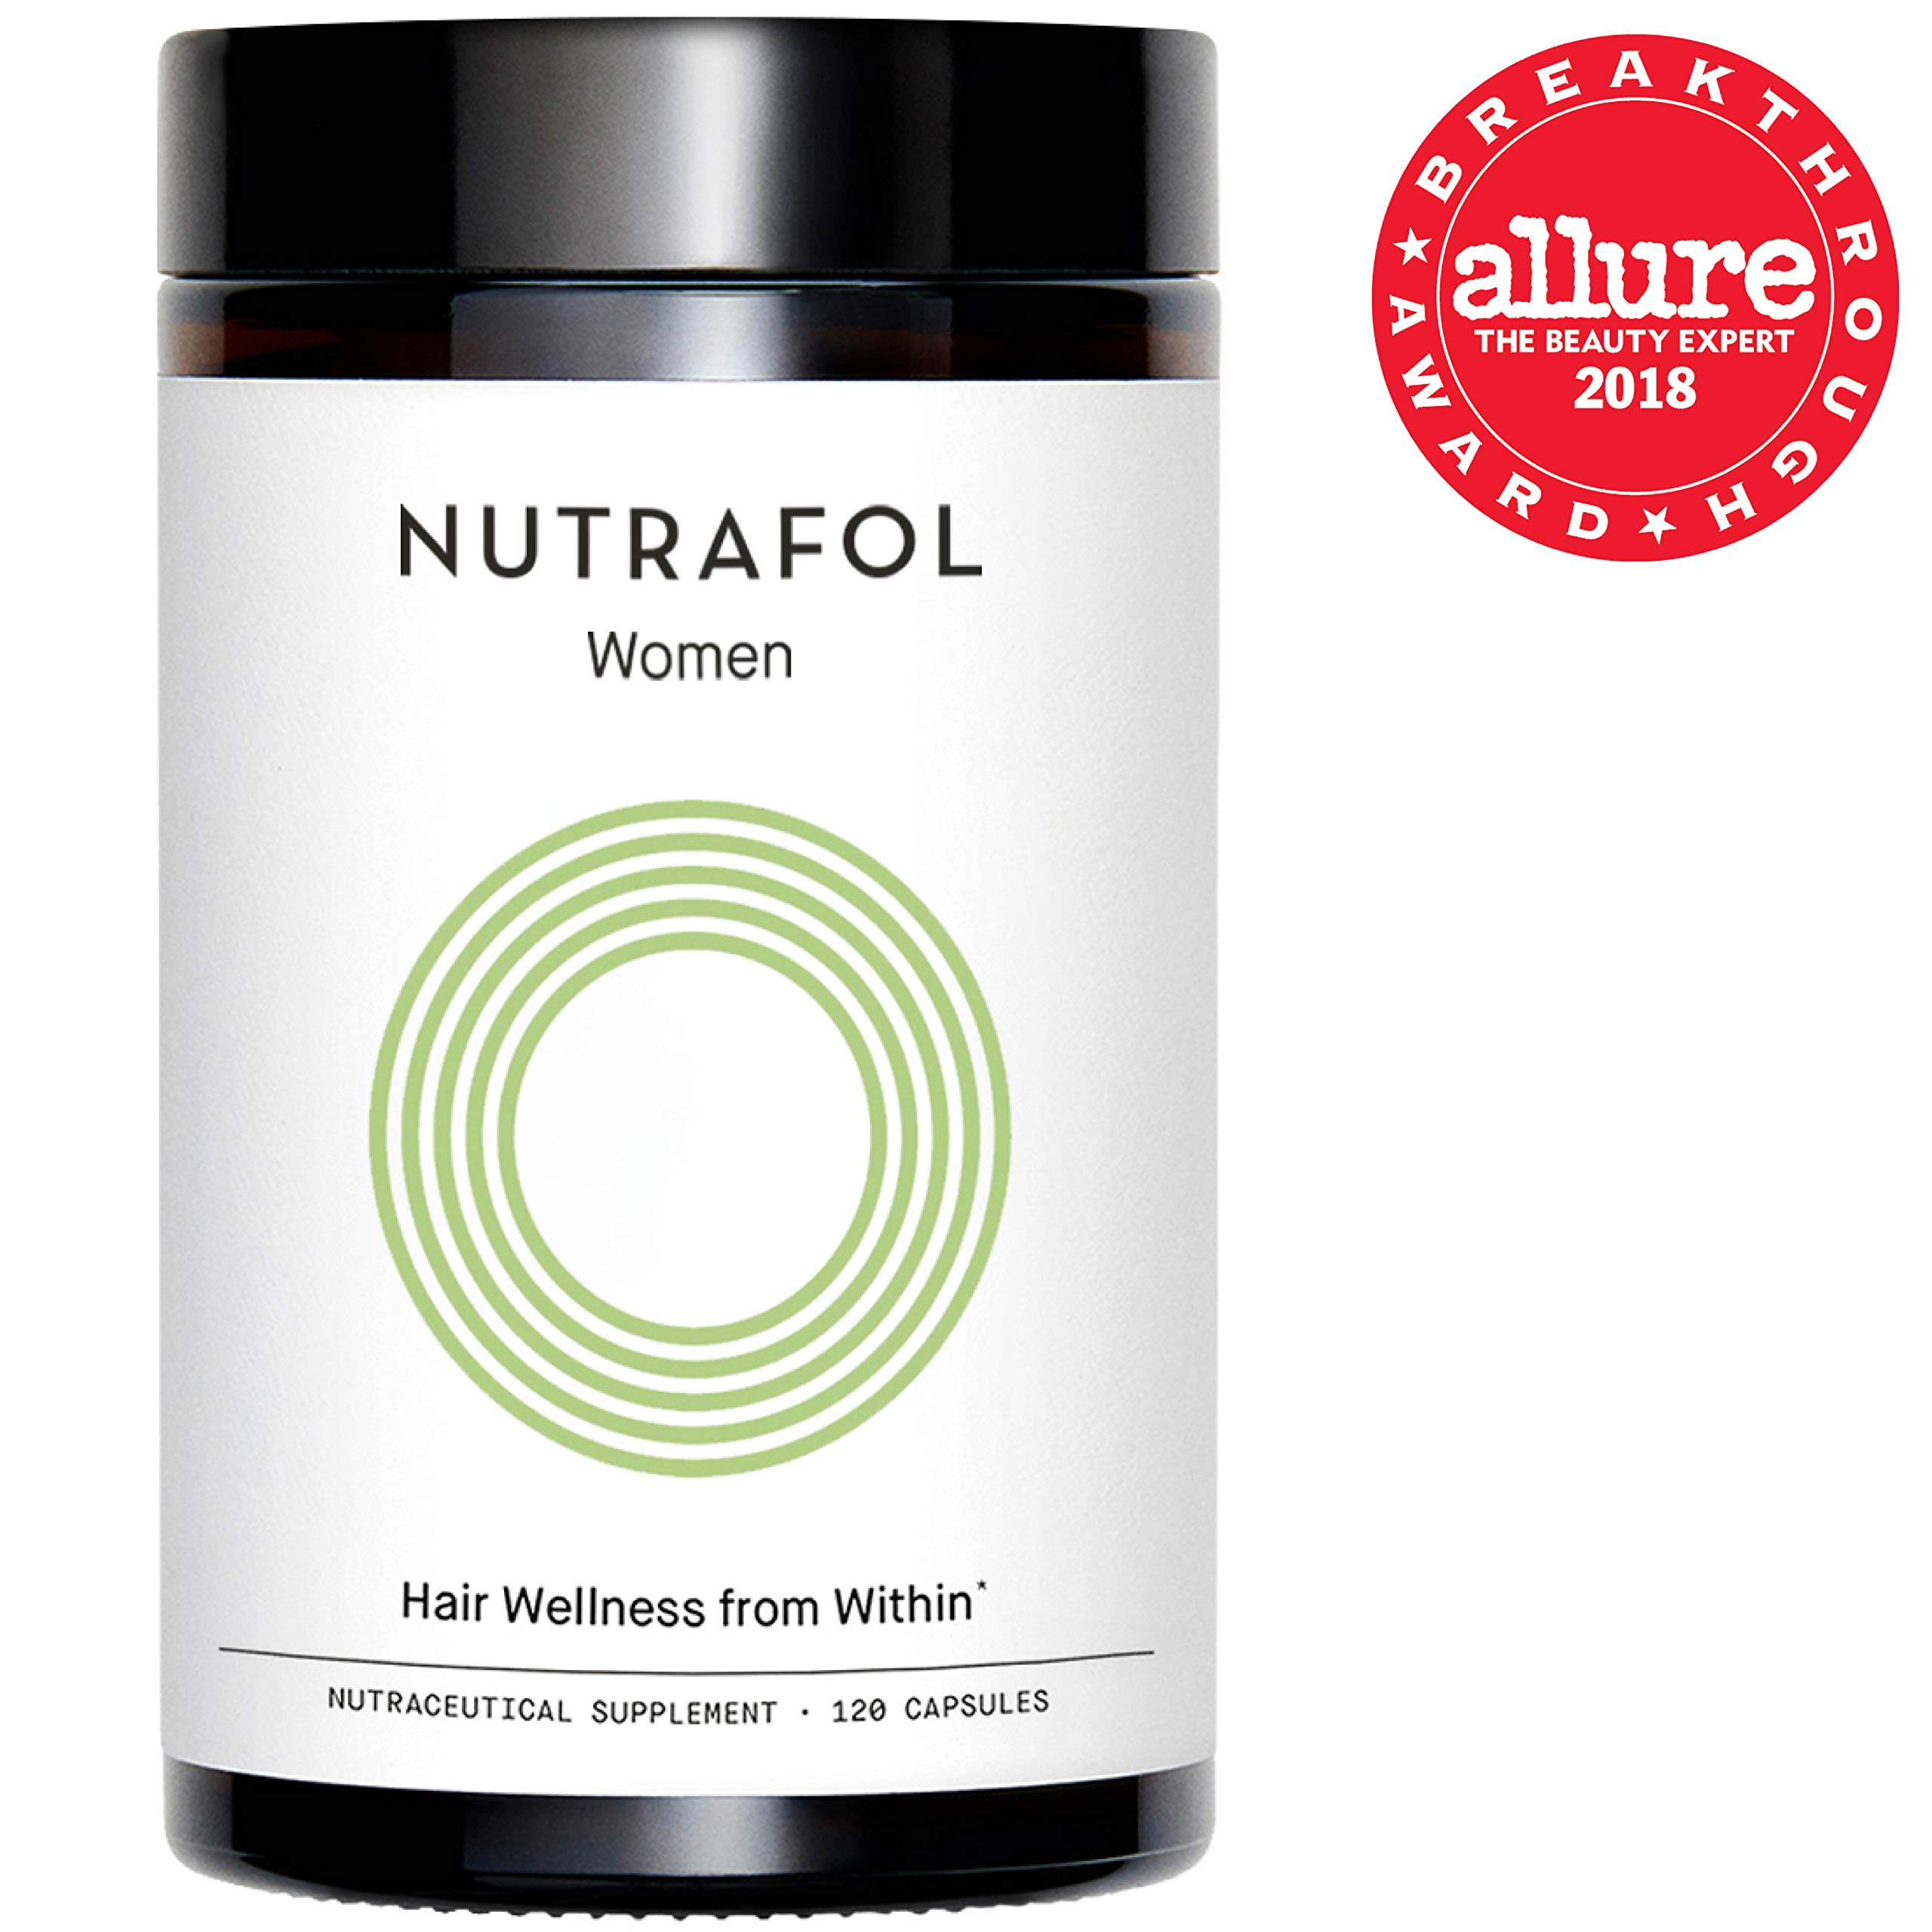 Nutrafol Hair Loss Thinning Supplement - Women Hair Vitamin for Thicker Healthier Hair, 120 Capsules by Nutrafol